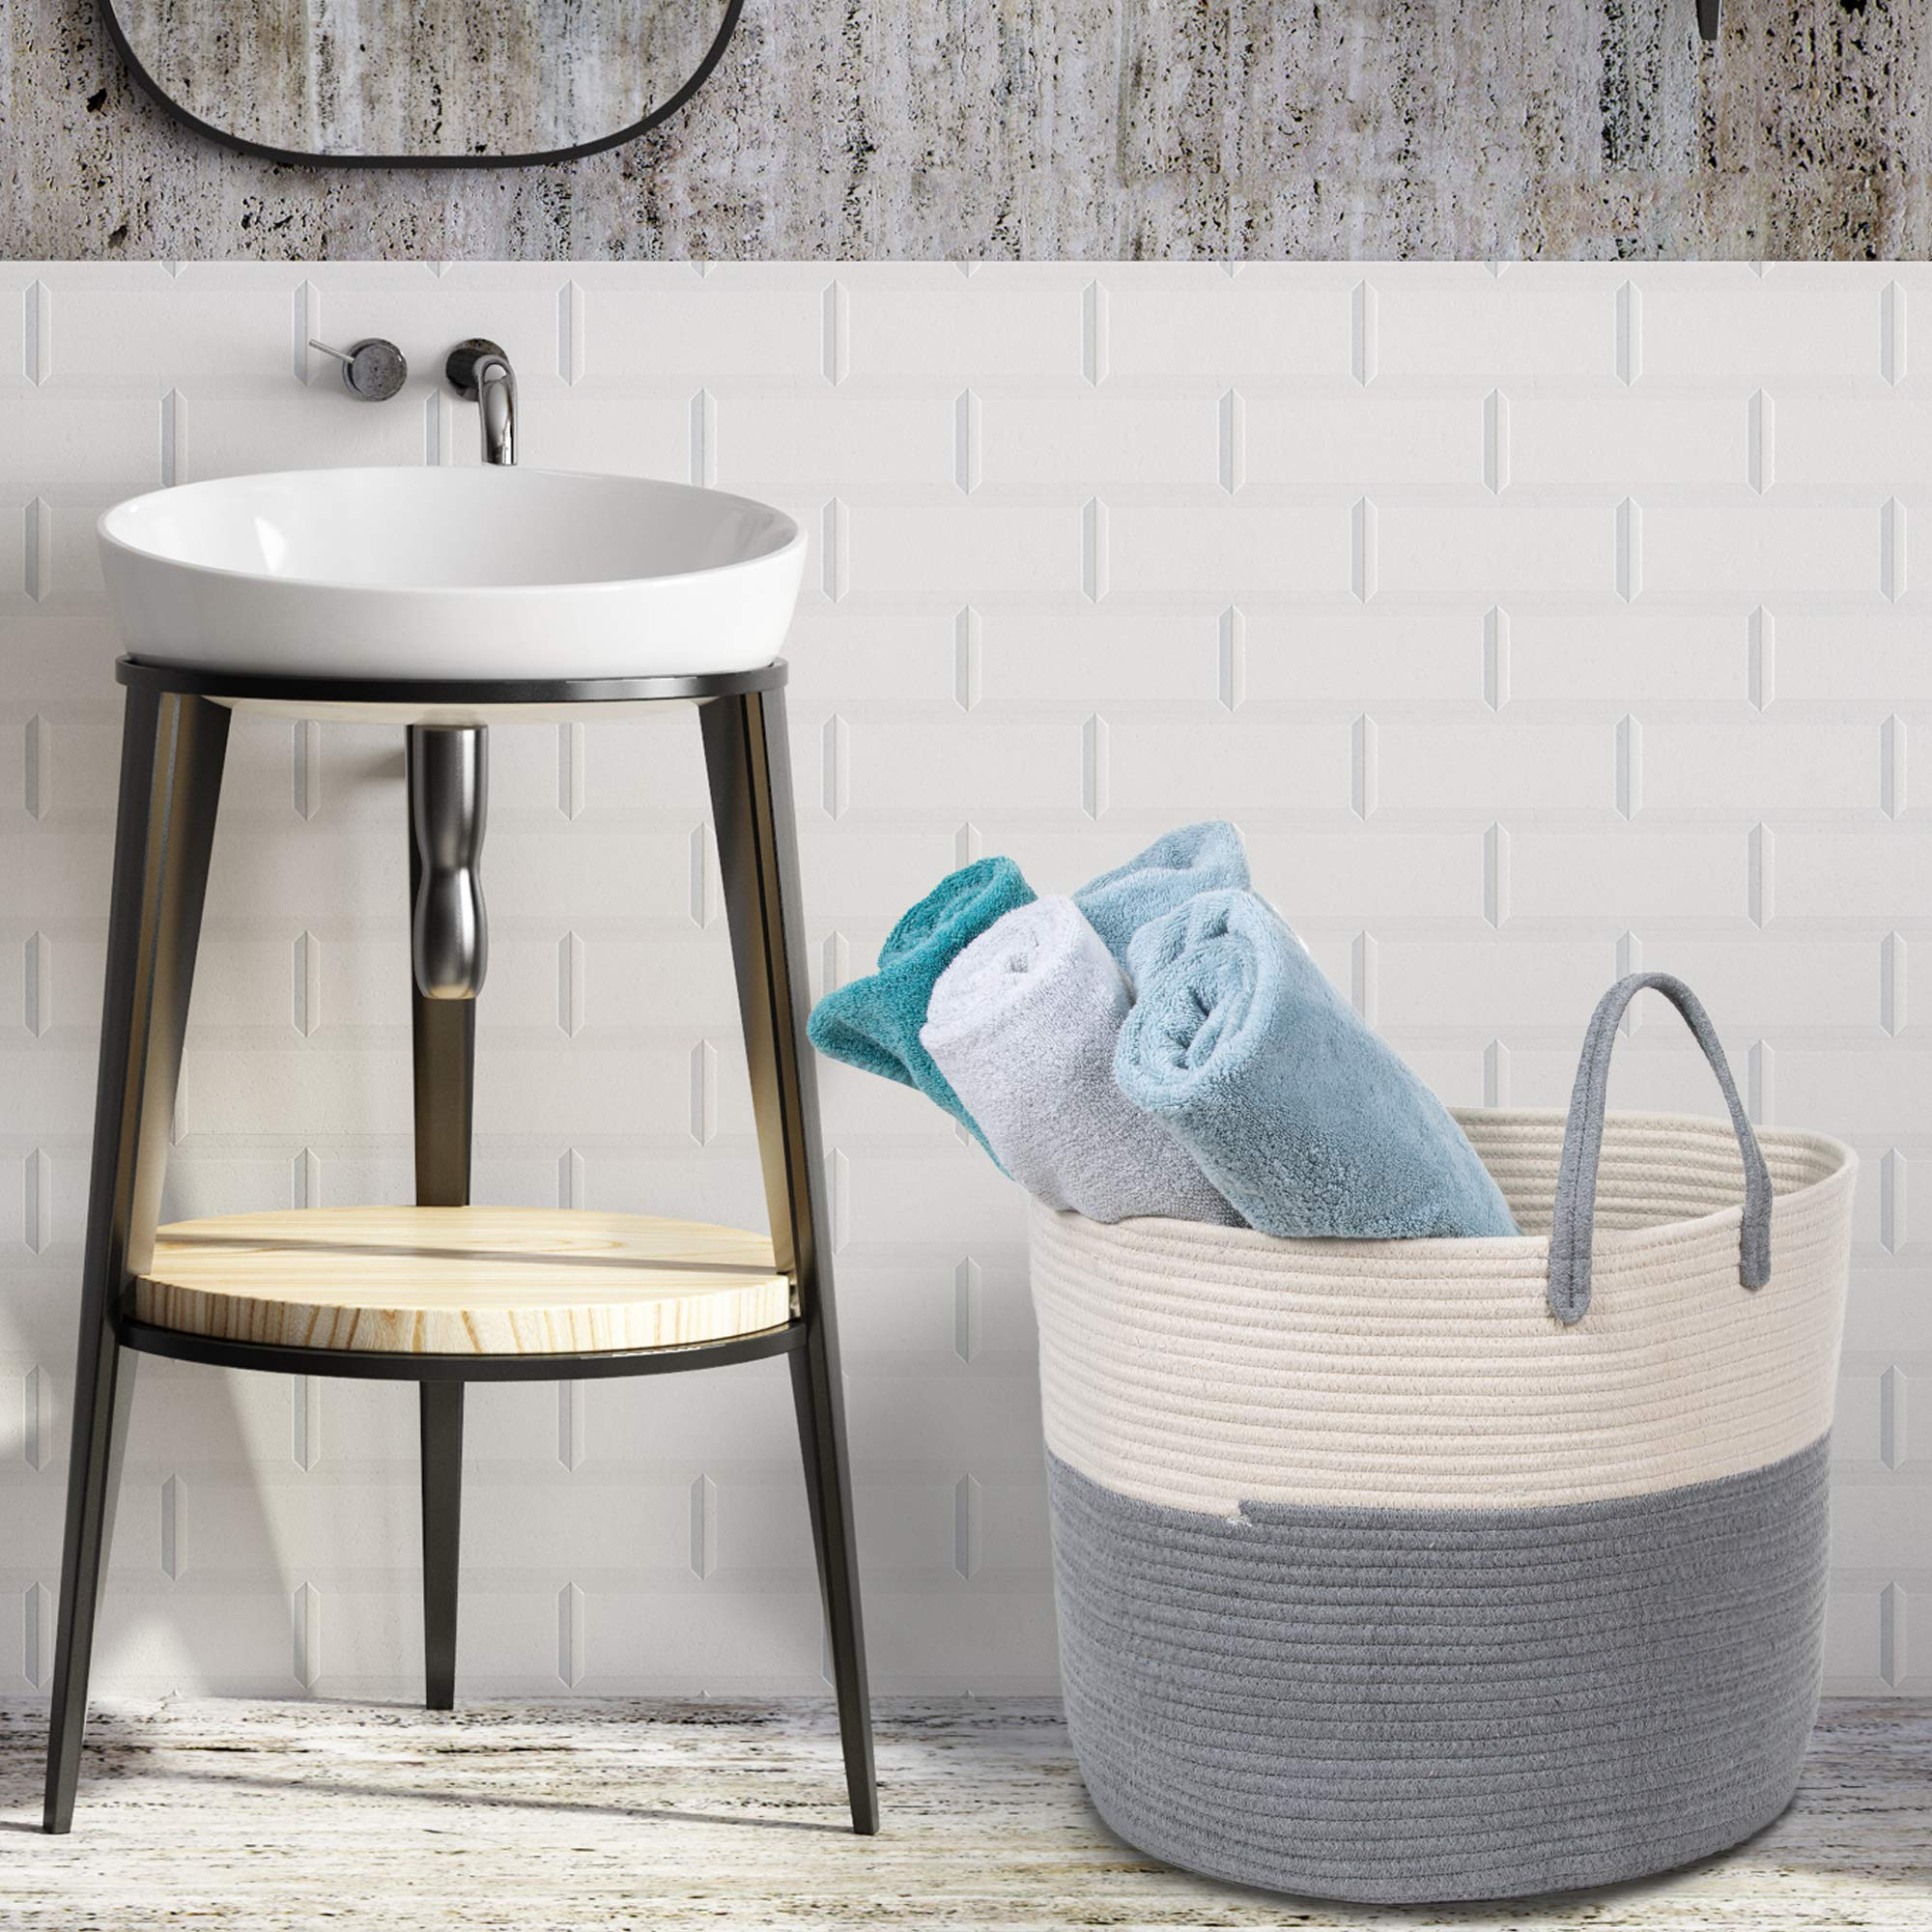 Extra Large Cotton Rope Basket 17 x 14.7 with Handles, for Baby Laundry Basket Woven Blanket Basket Nursery Bin by YOONLIVING (Image #4)